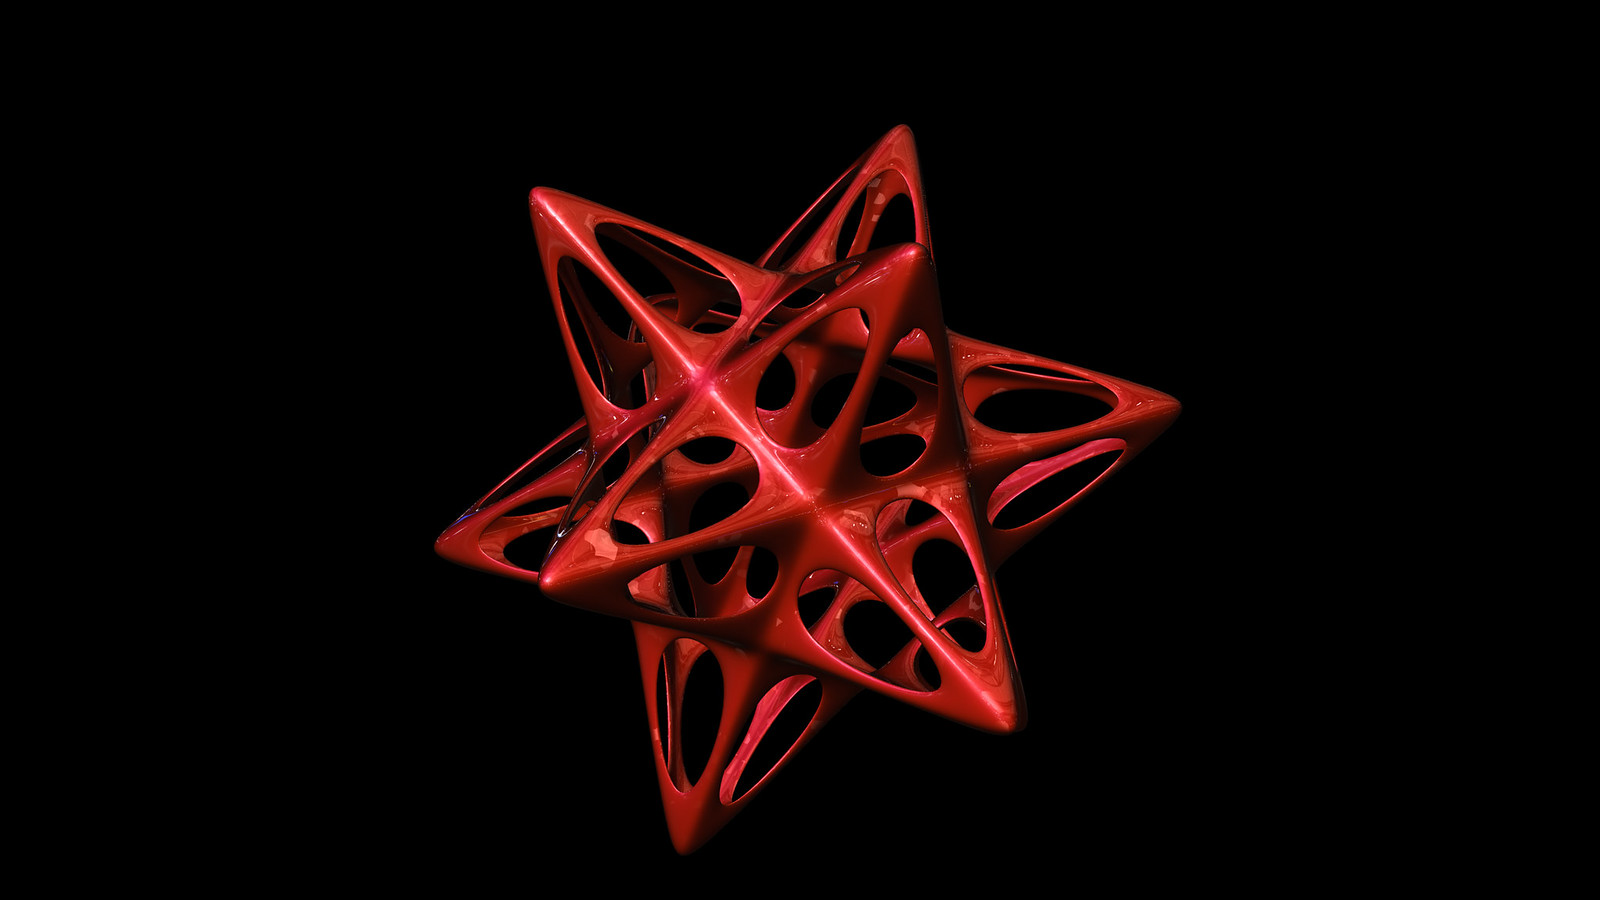 Dodecahedron spiky soft